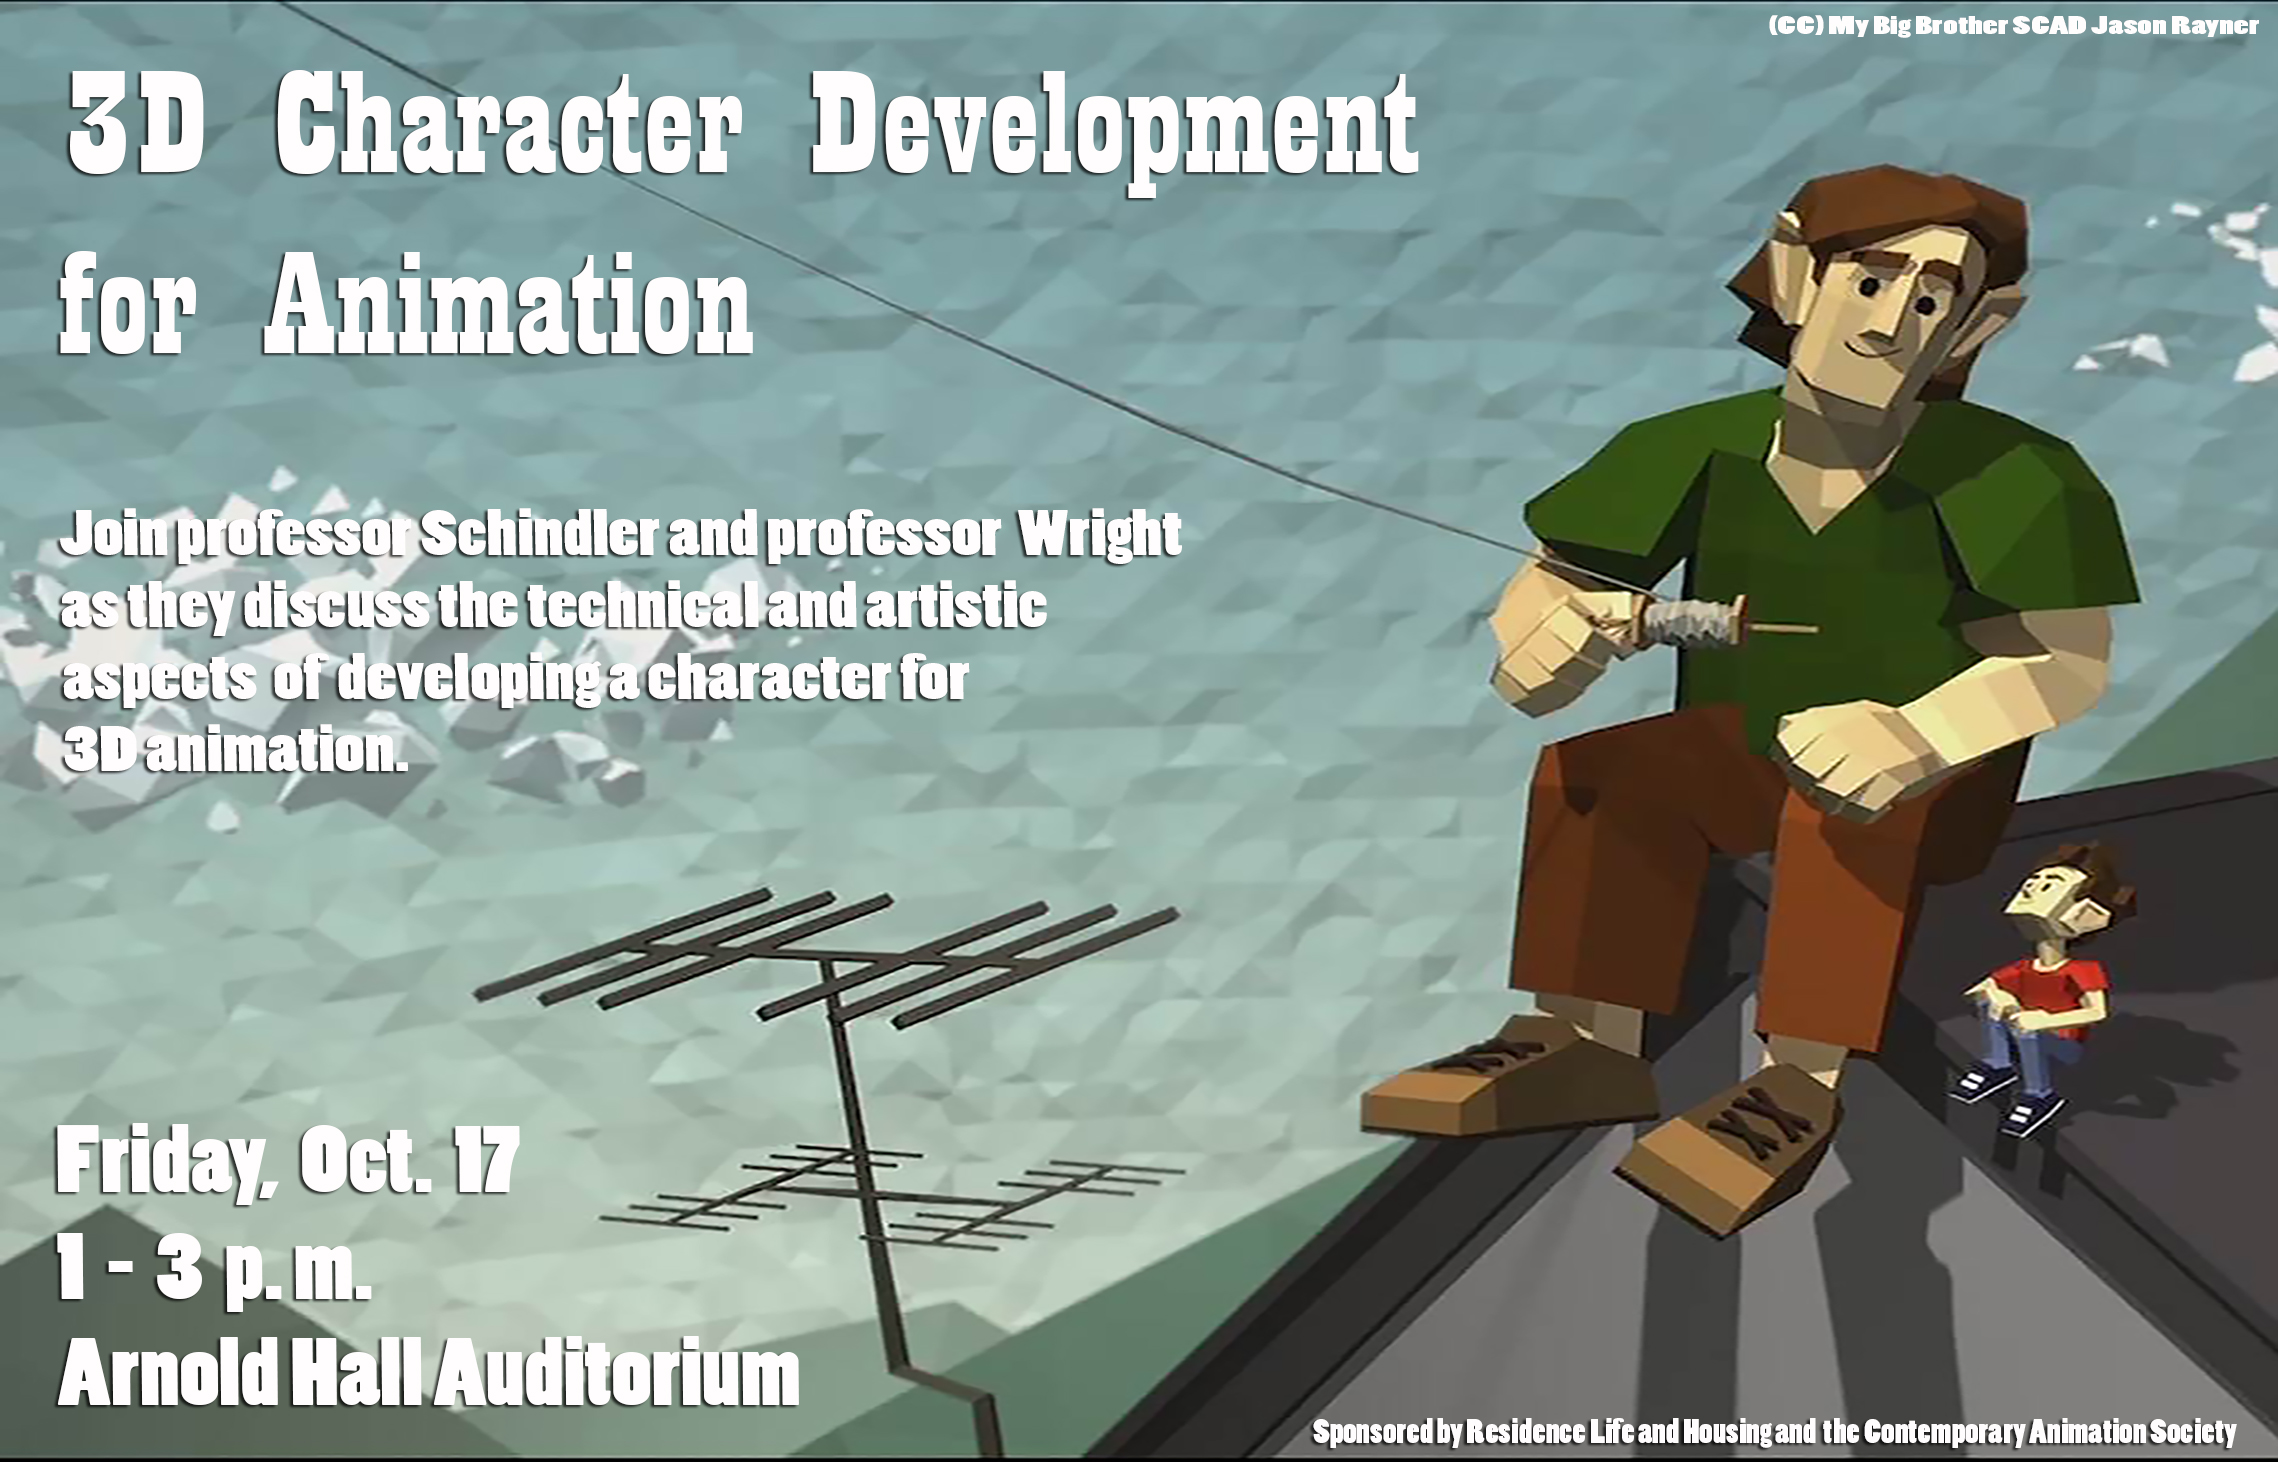 3D Character Development for Animation